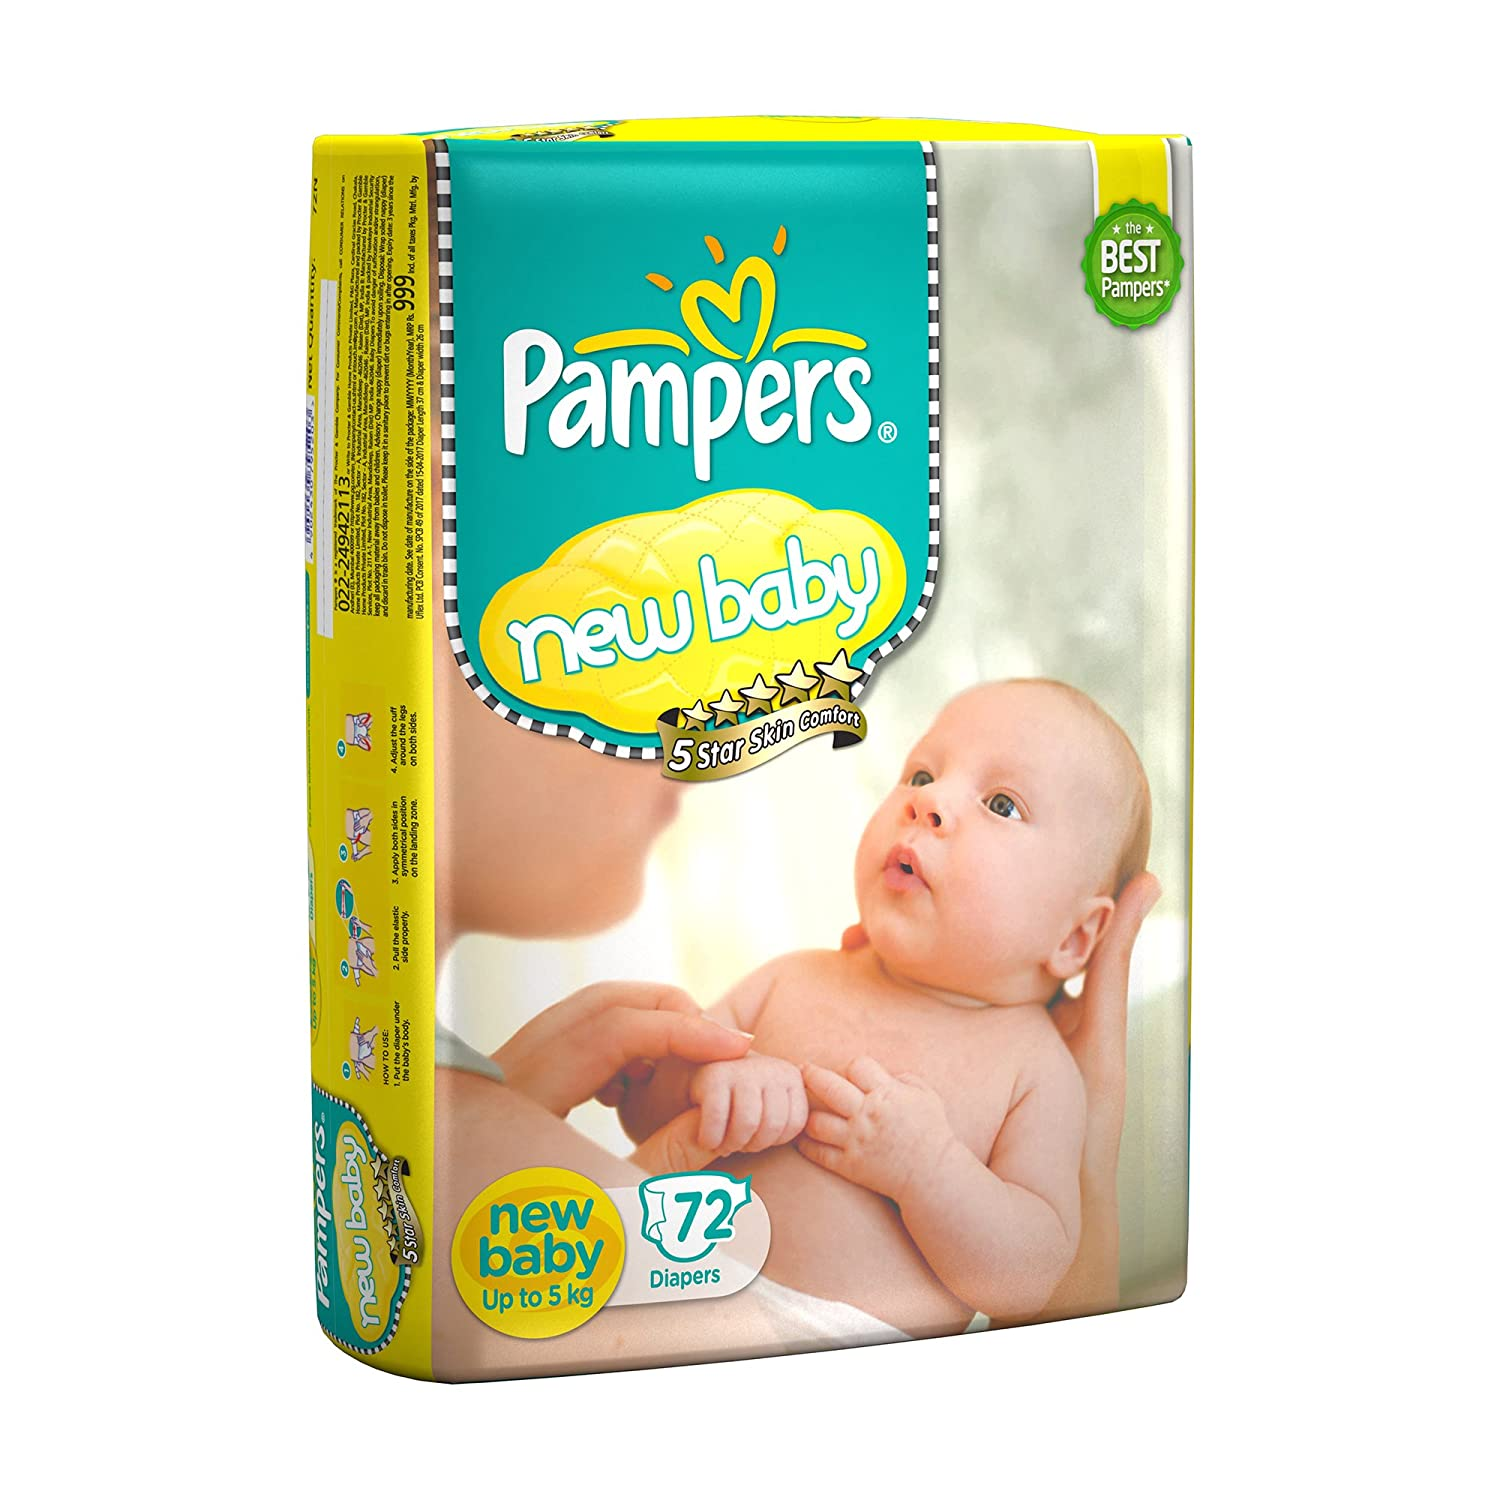 Diapers for newborns: types and purpose